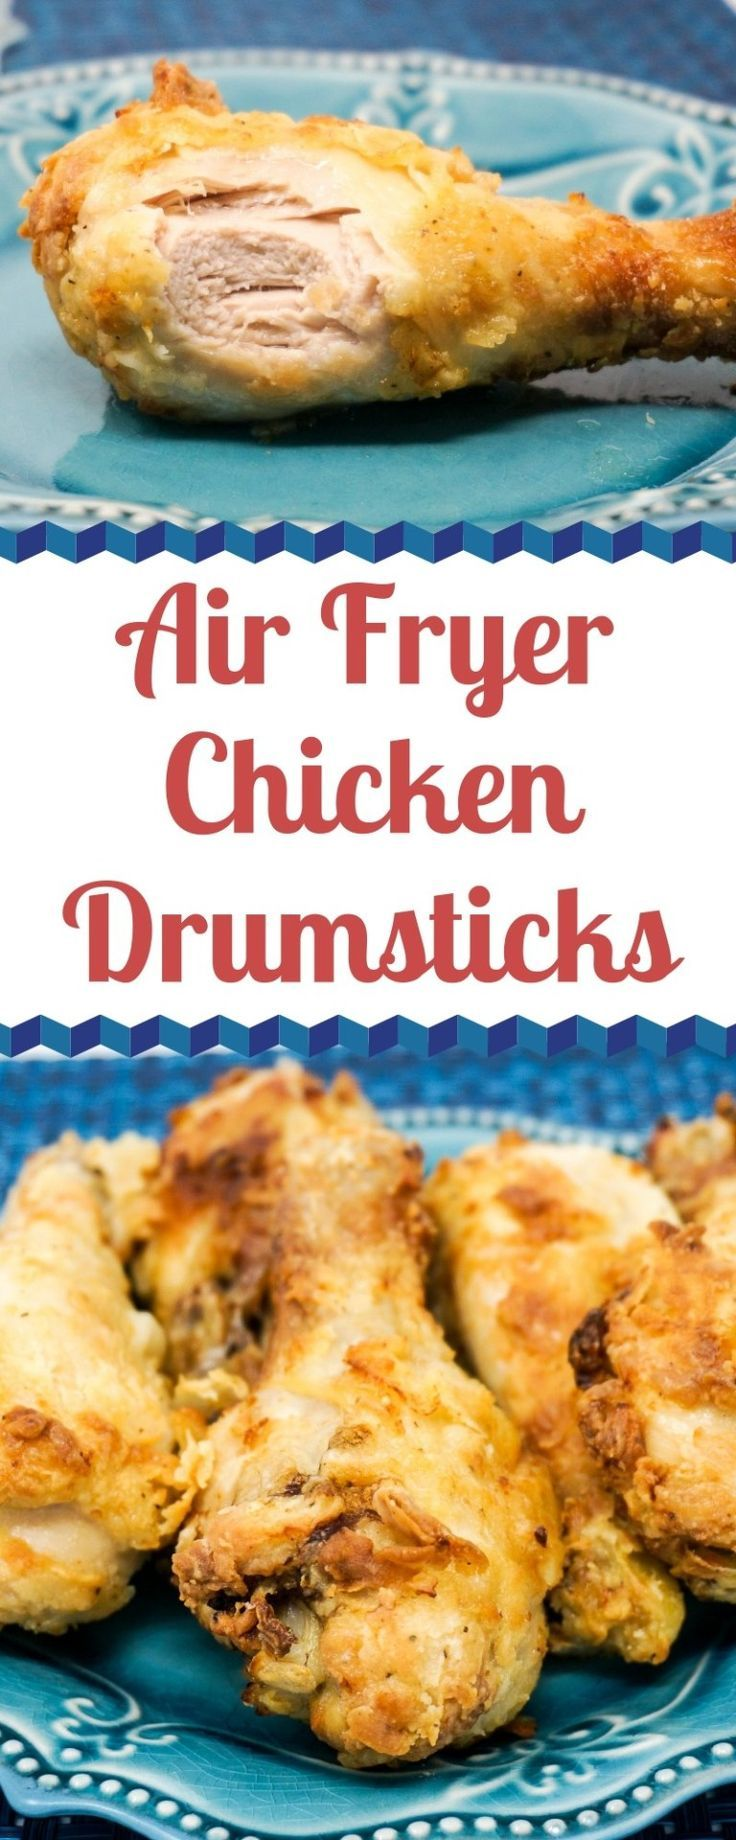 Air Fryer Chicken Drumsticks Recipe in 2020 (With images